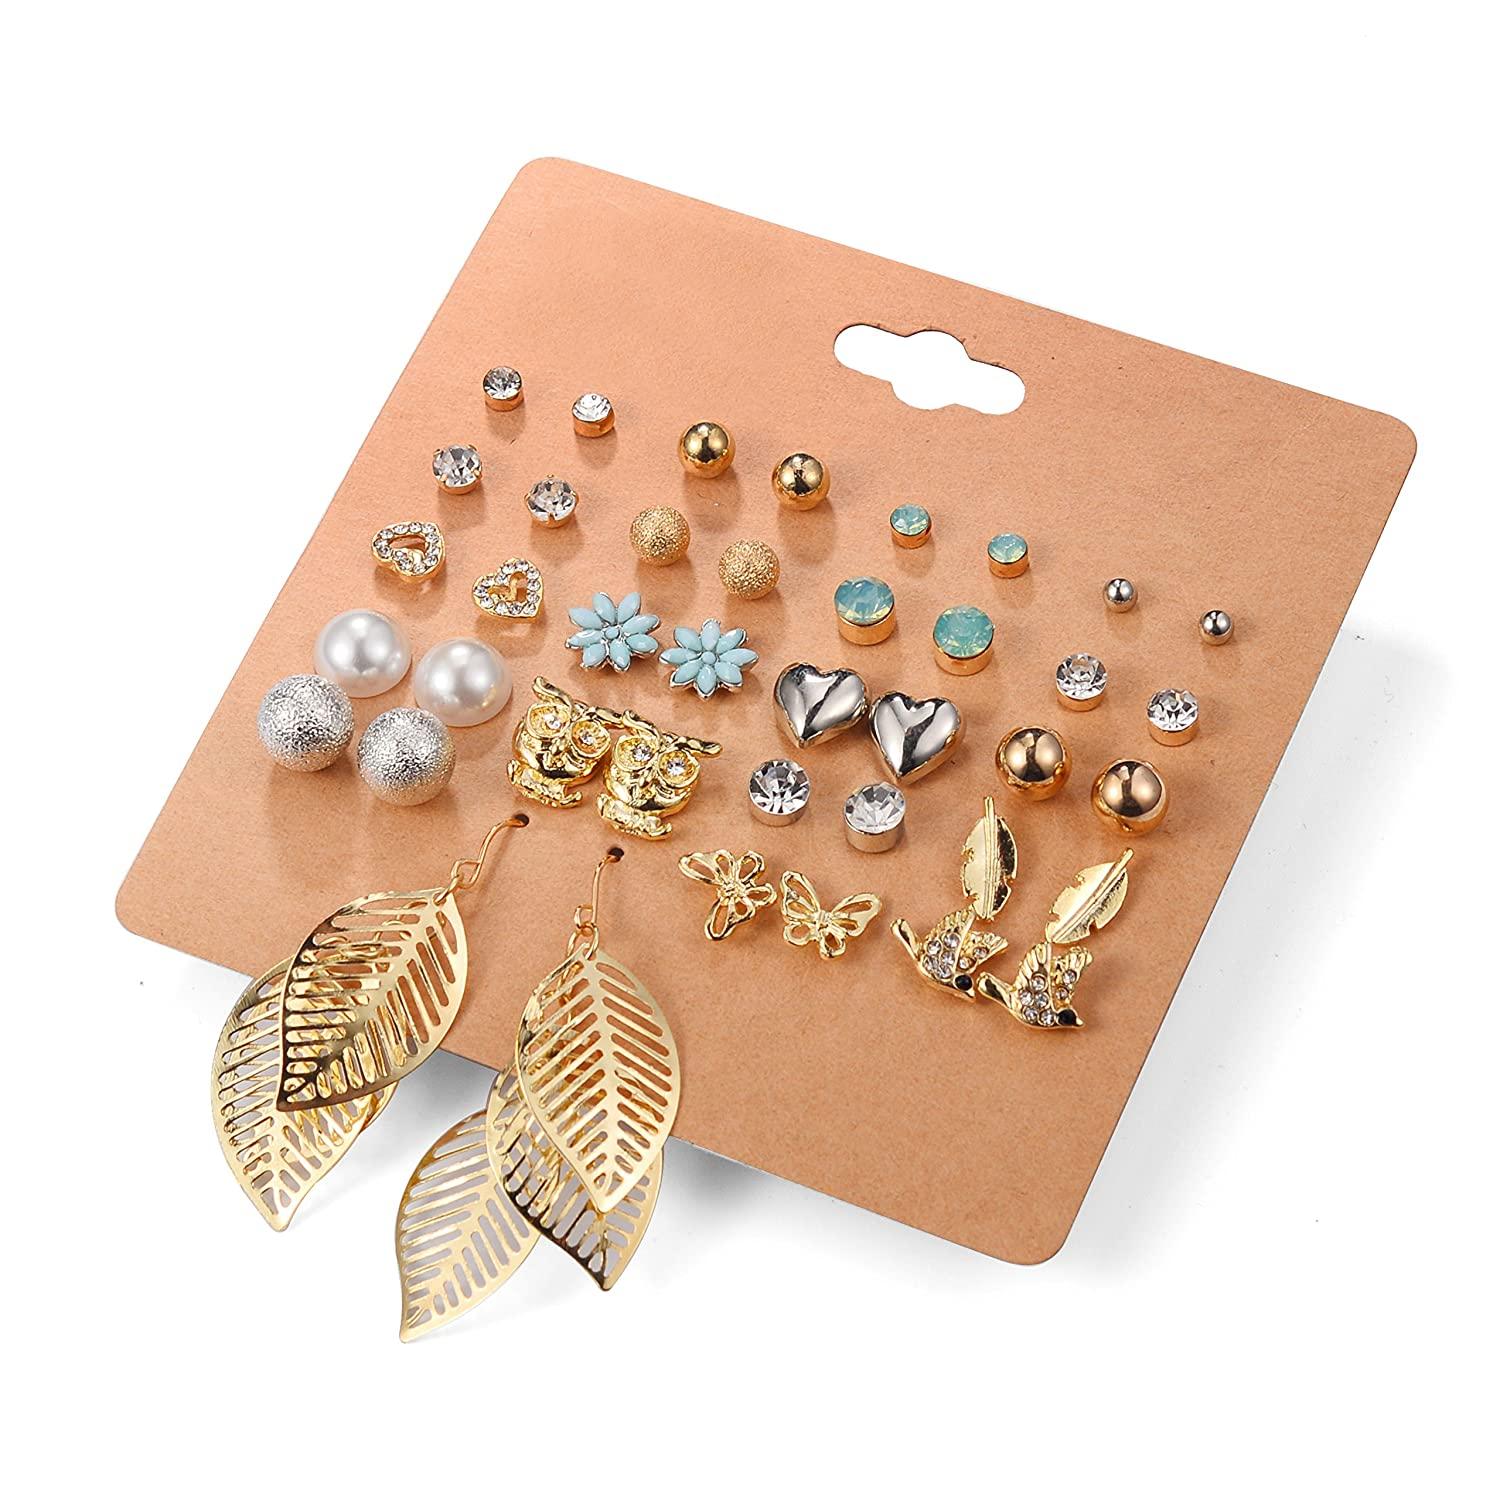 Amazon.com  Unique Queen Women s Girl s Stainless Steel Assorted Multiple  Stud Earring 20 Style Sets Girl s Christmas Gift 4a53ffecf